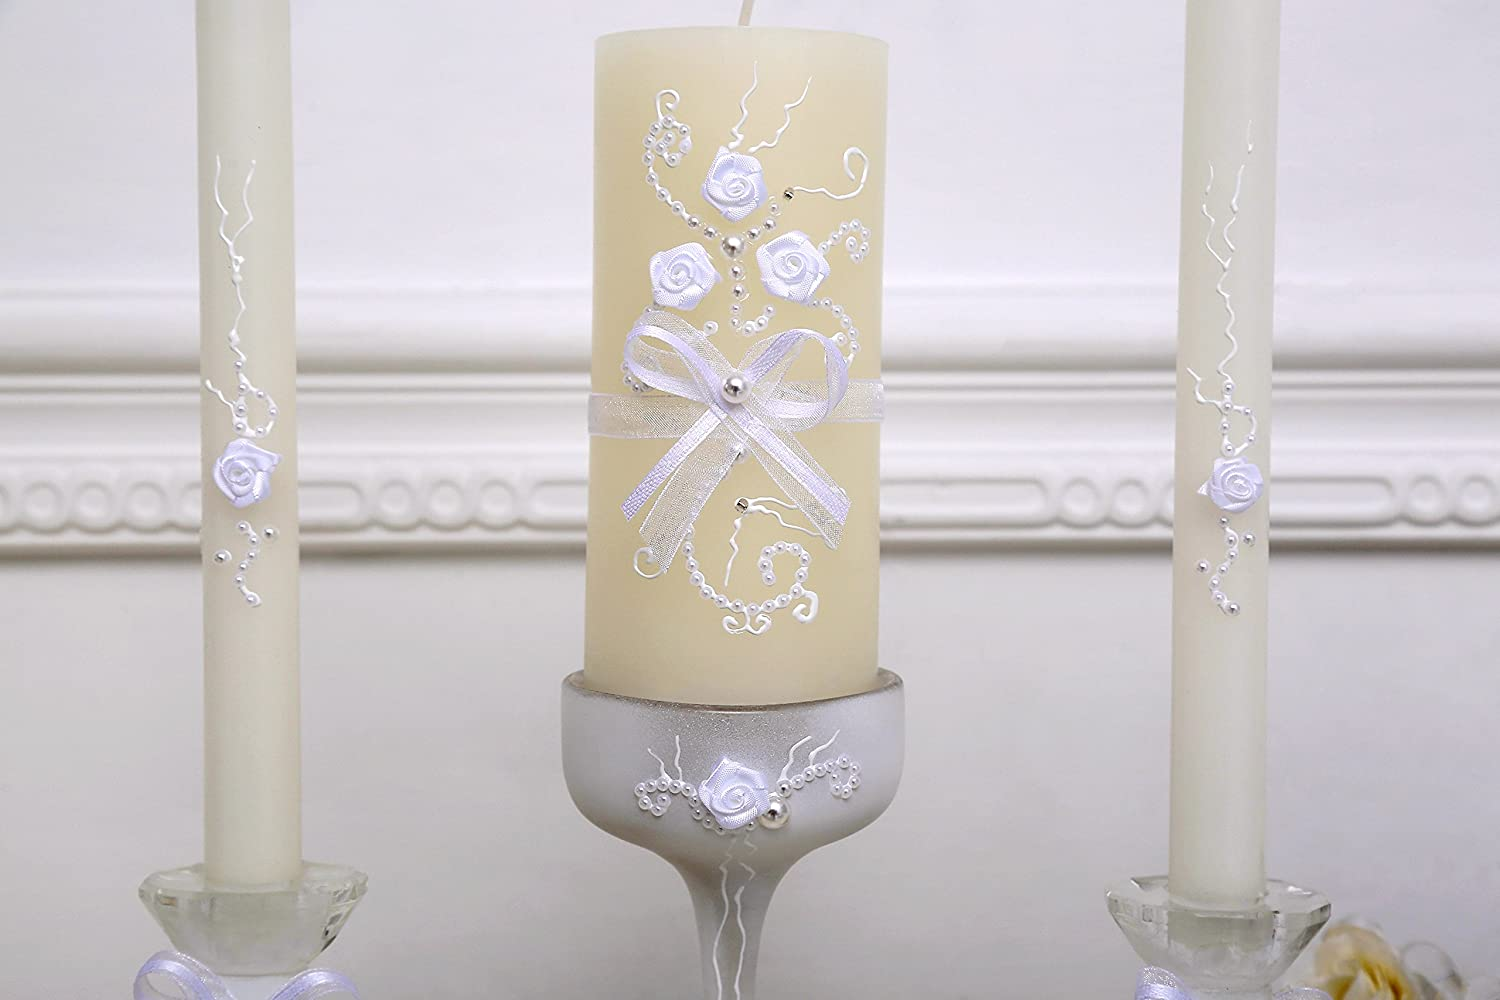 www.Beadingsupplys.com Rustic Chic wedding unity candle set - 3 candles and 3 glass candleholders with ribbon, lace and pearls decoration, vintage unity ceremony